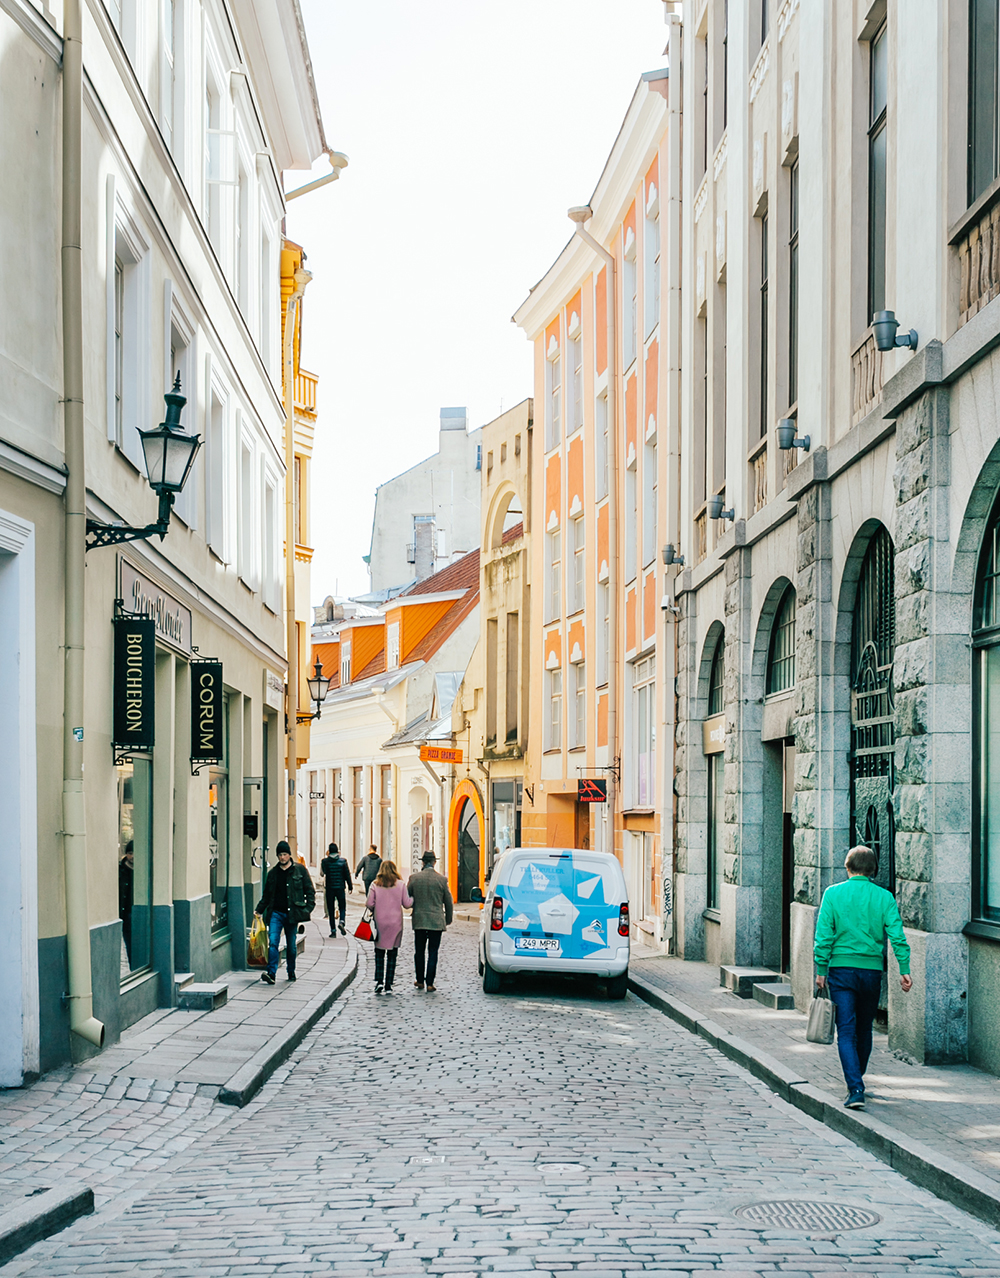 livvyland-blog-olivia-watson-fashion-travel-blogger-princess-cruises-scandinavia-northern-europe-what-to-do-wear-tallinn-estonia-13